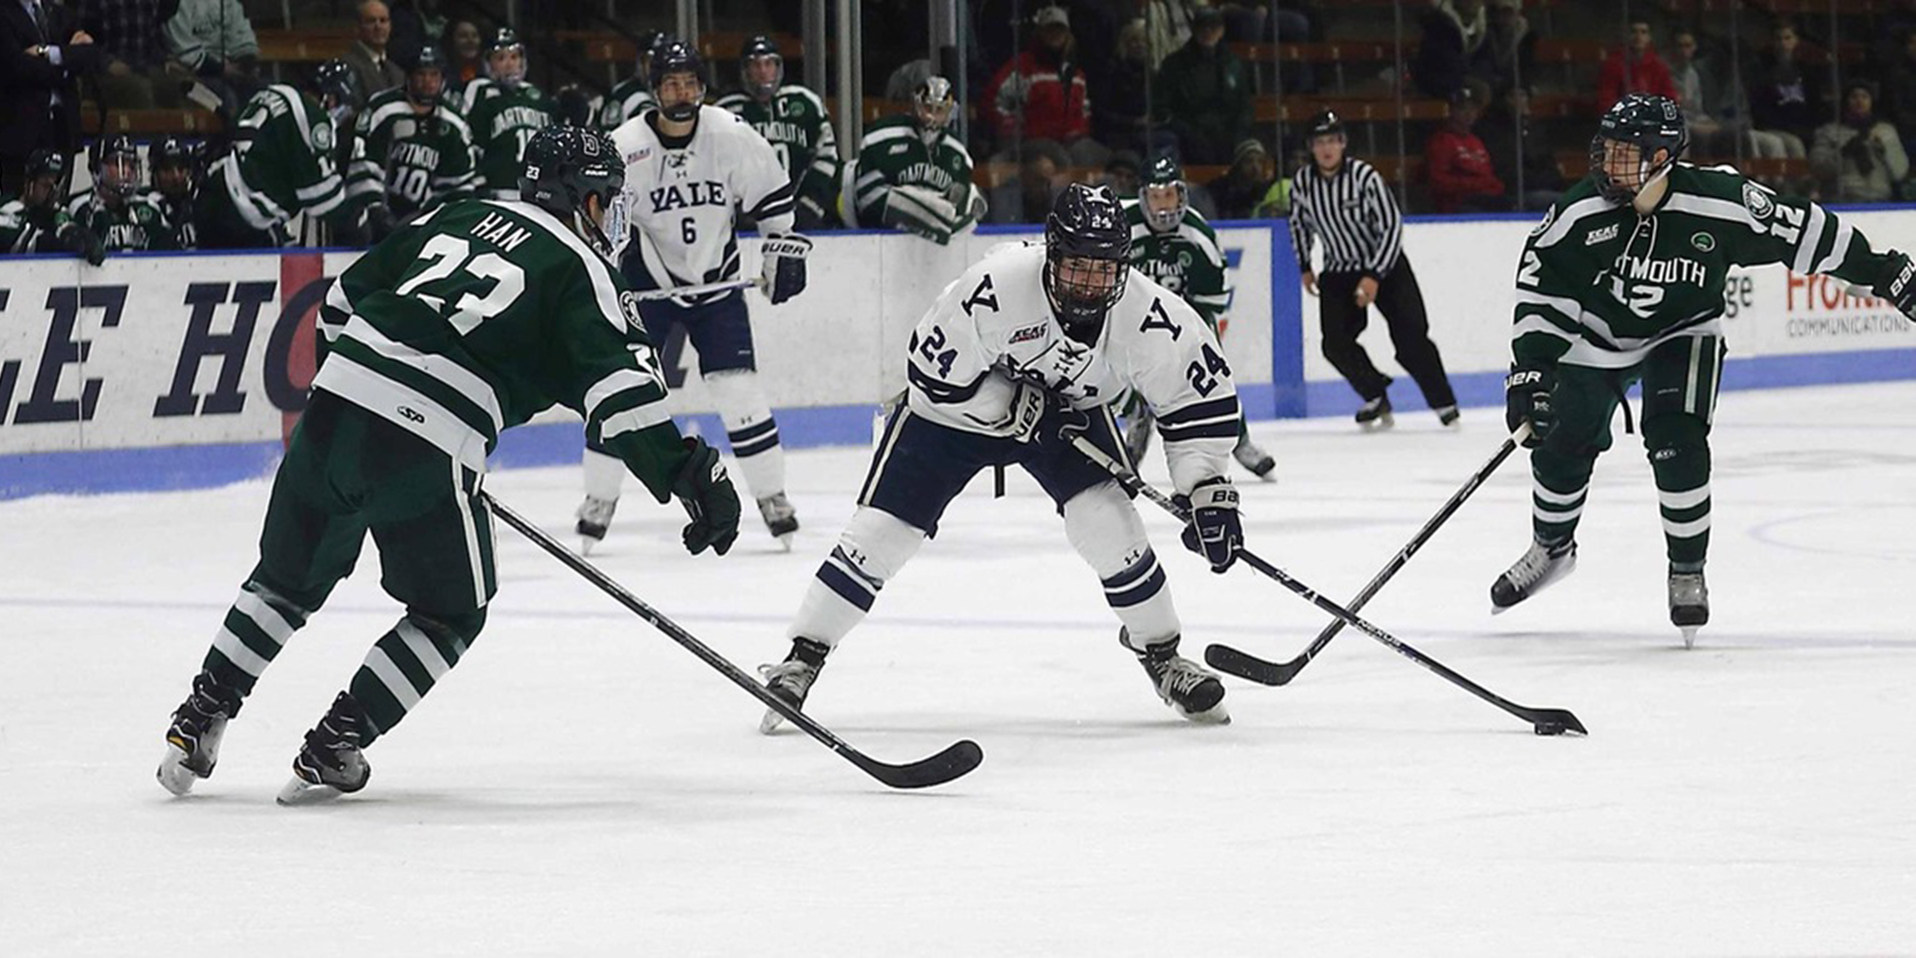 Gaus' OT Goal Advances Yale on to ECAC Quarterfinals